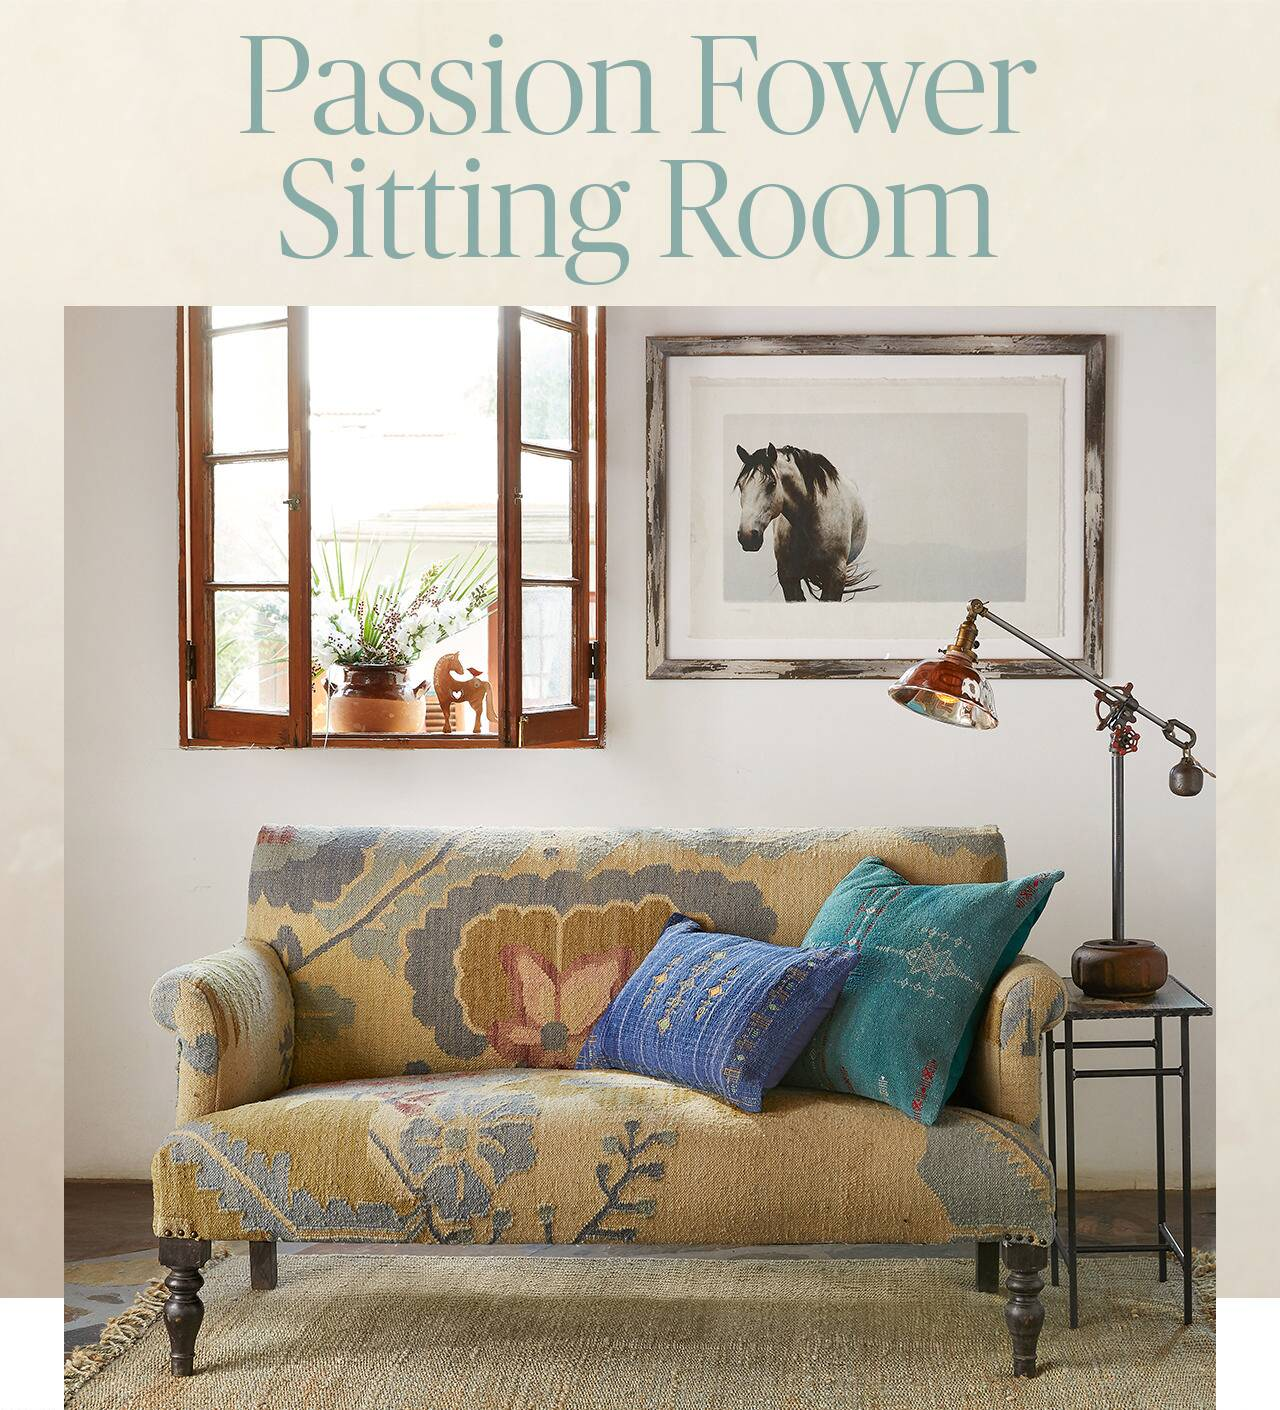 Passion Flower Sitting Room